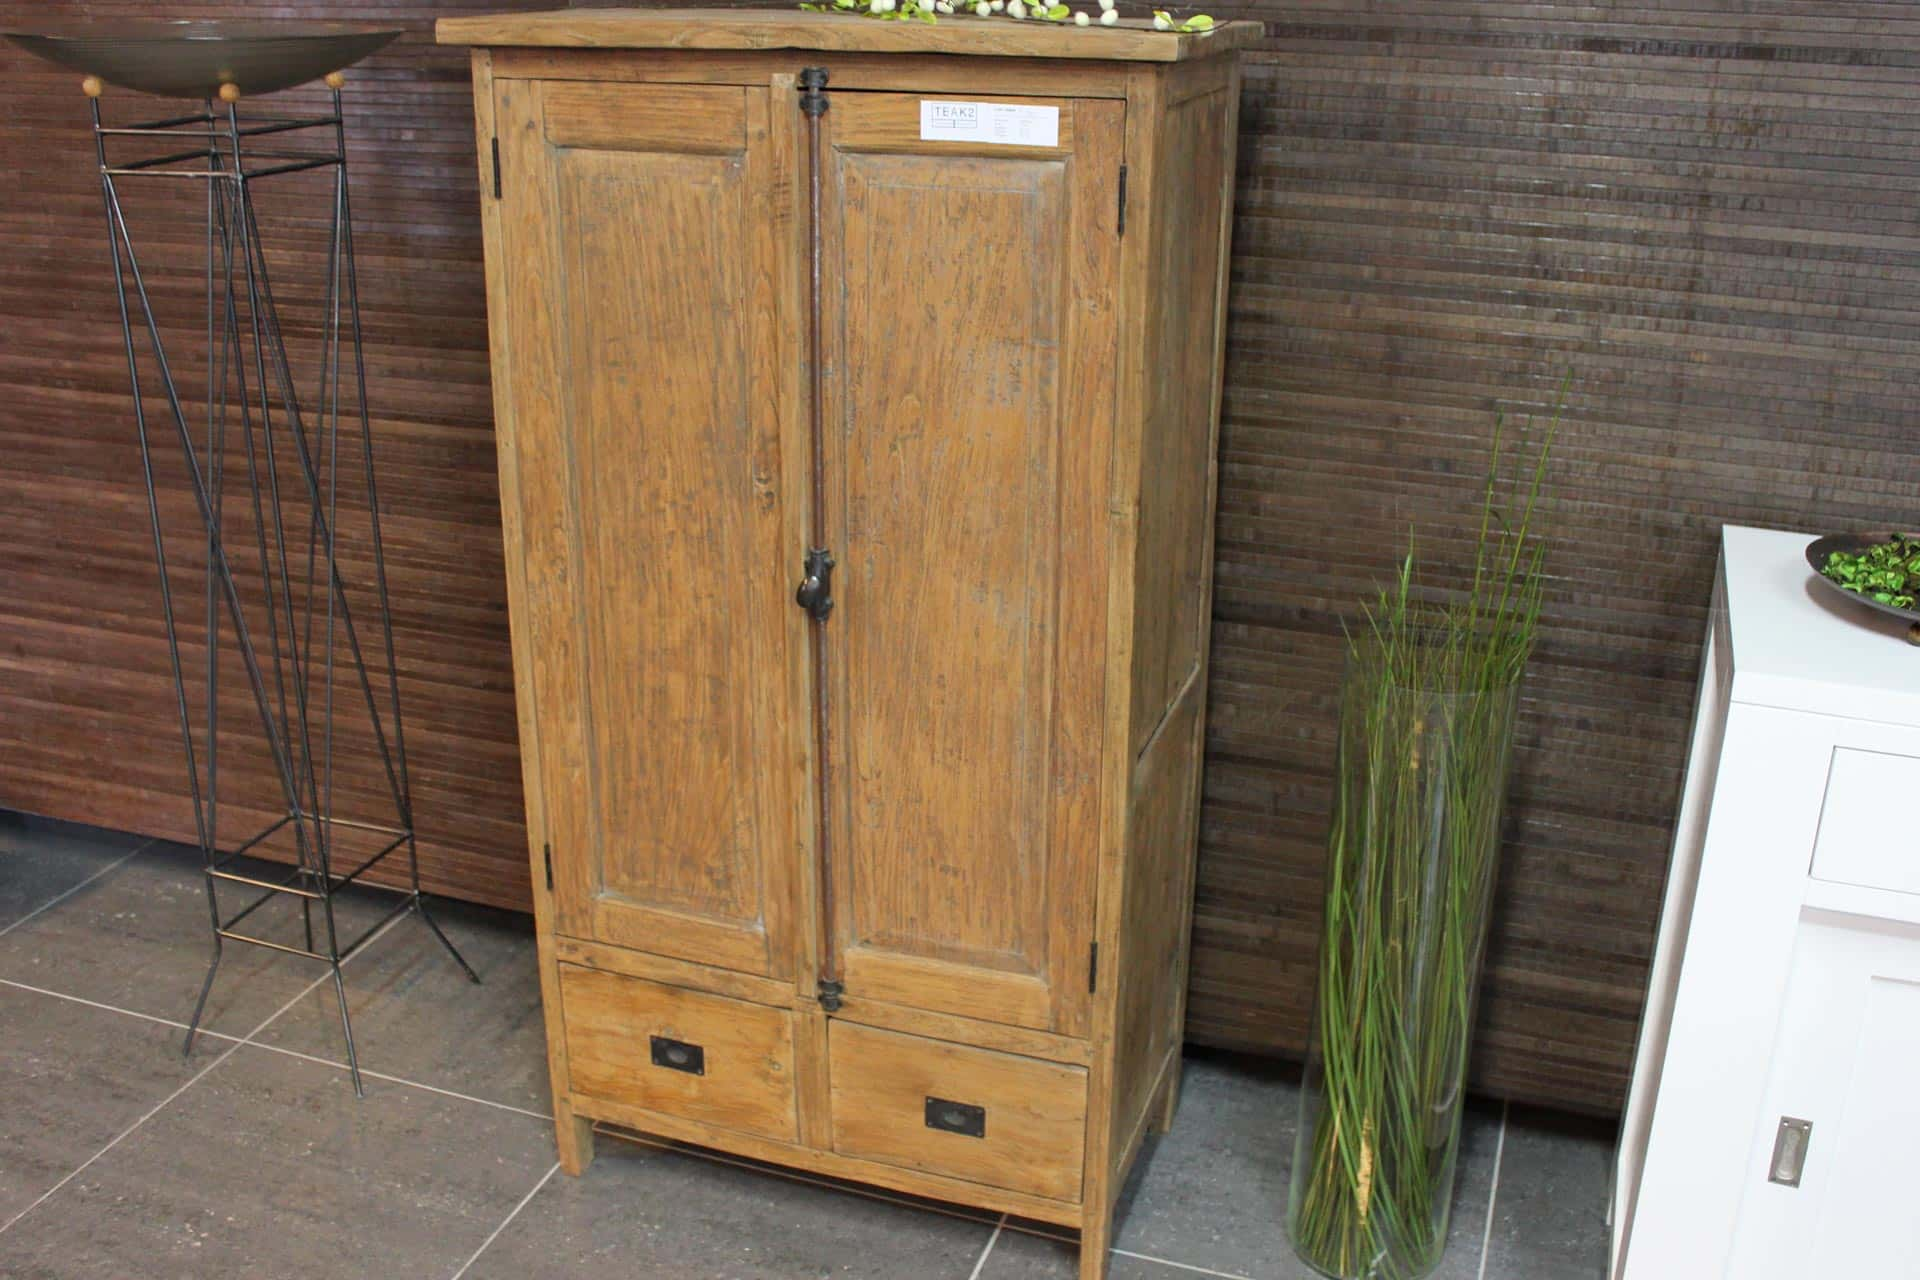 Cuci Taraf 80L Old | small teak cupboard in beautiful old teak from Indonesia. Chic country vintage style. Teak furniture at furniture store TEAK2.